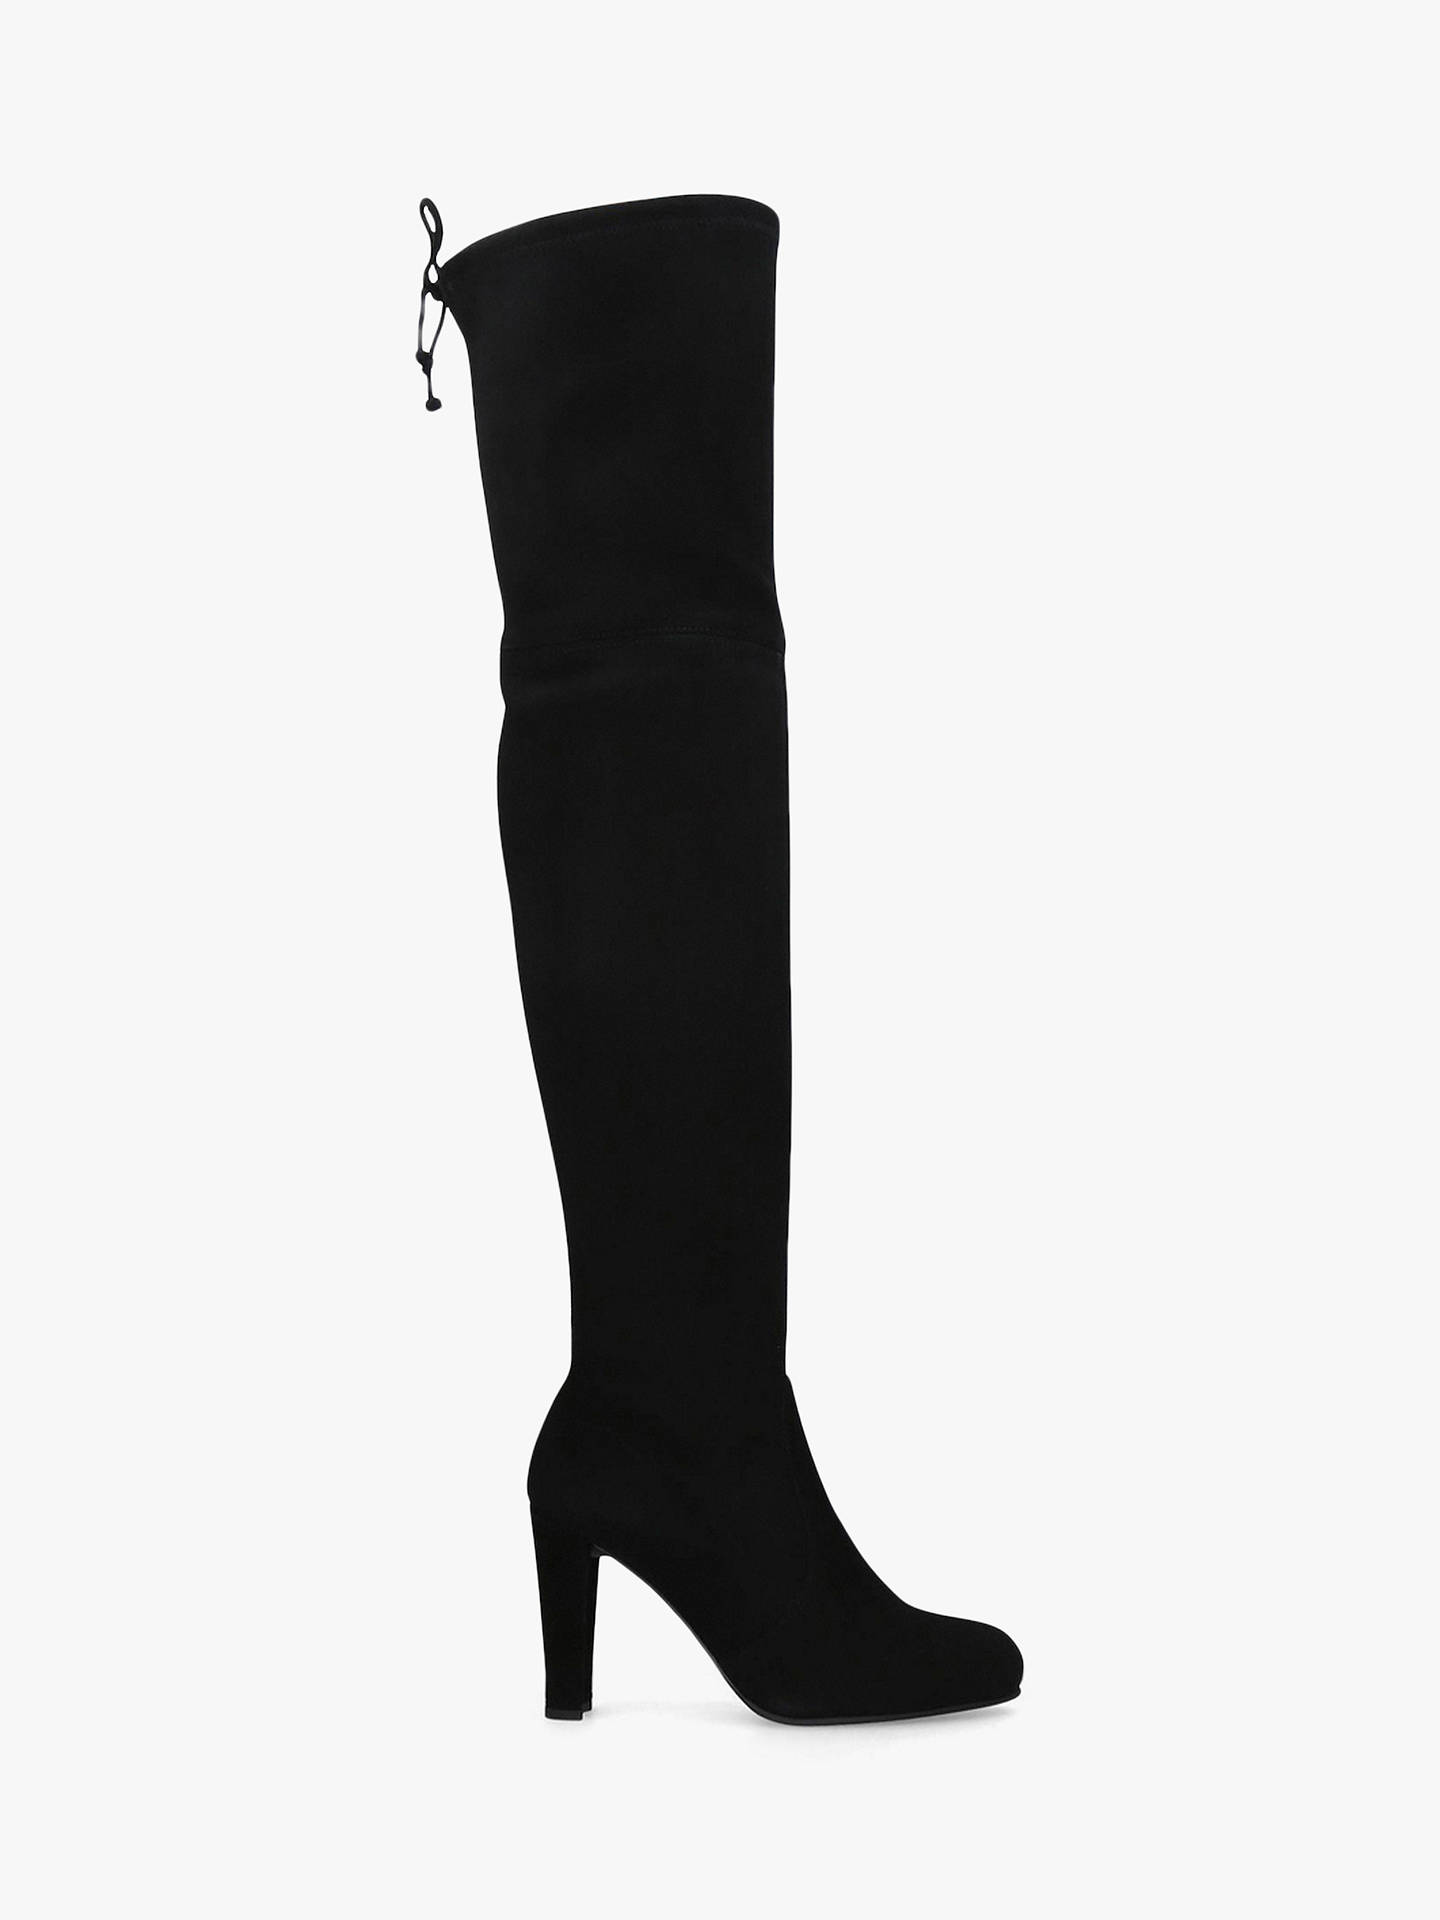 95af1934a27 Buy Stuart Weitzman Highland Over the Knee Boots